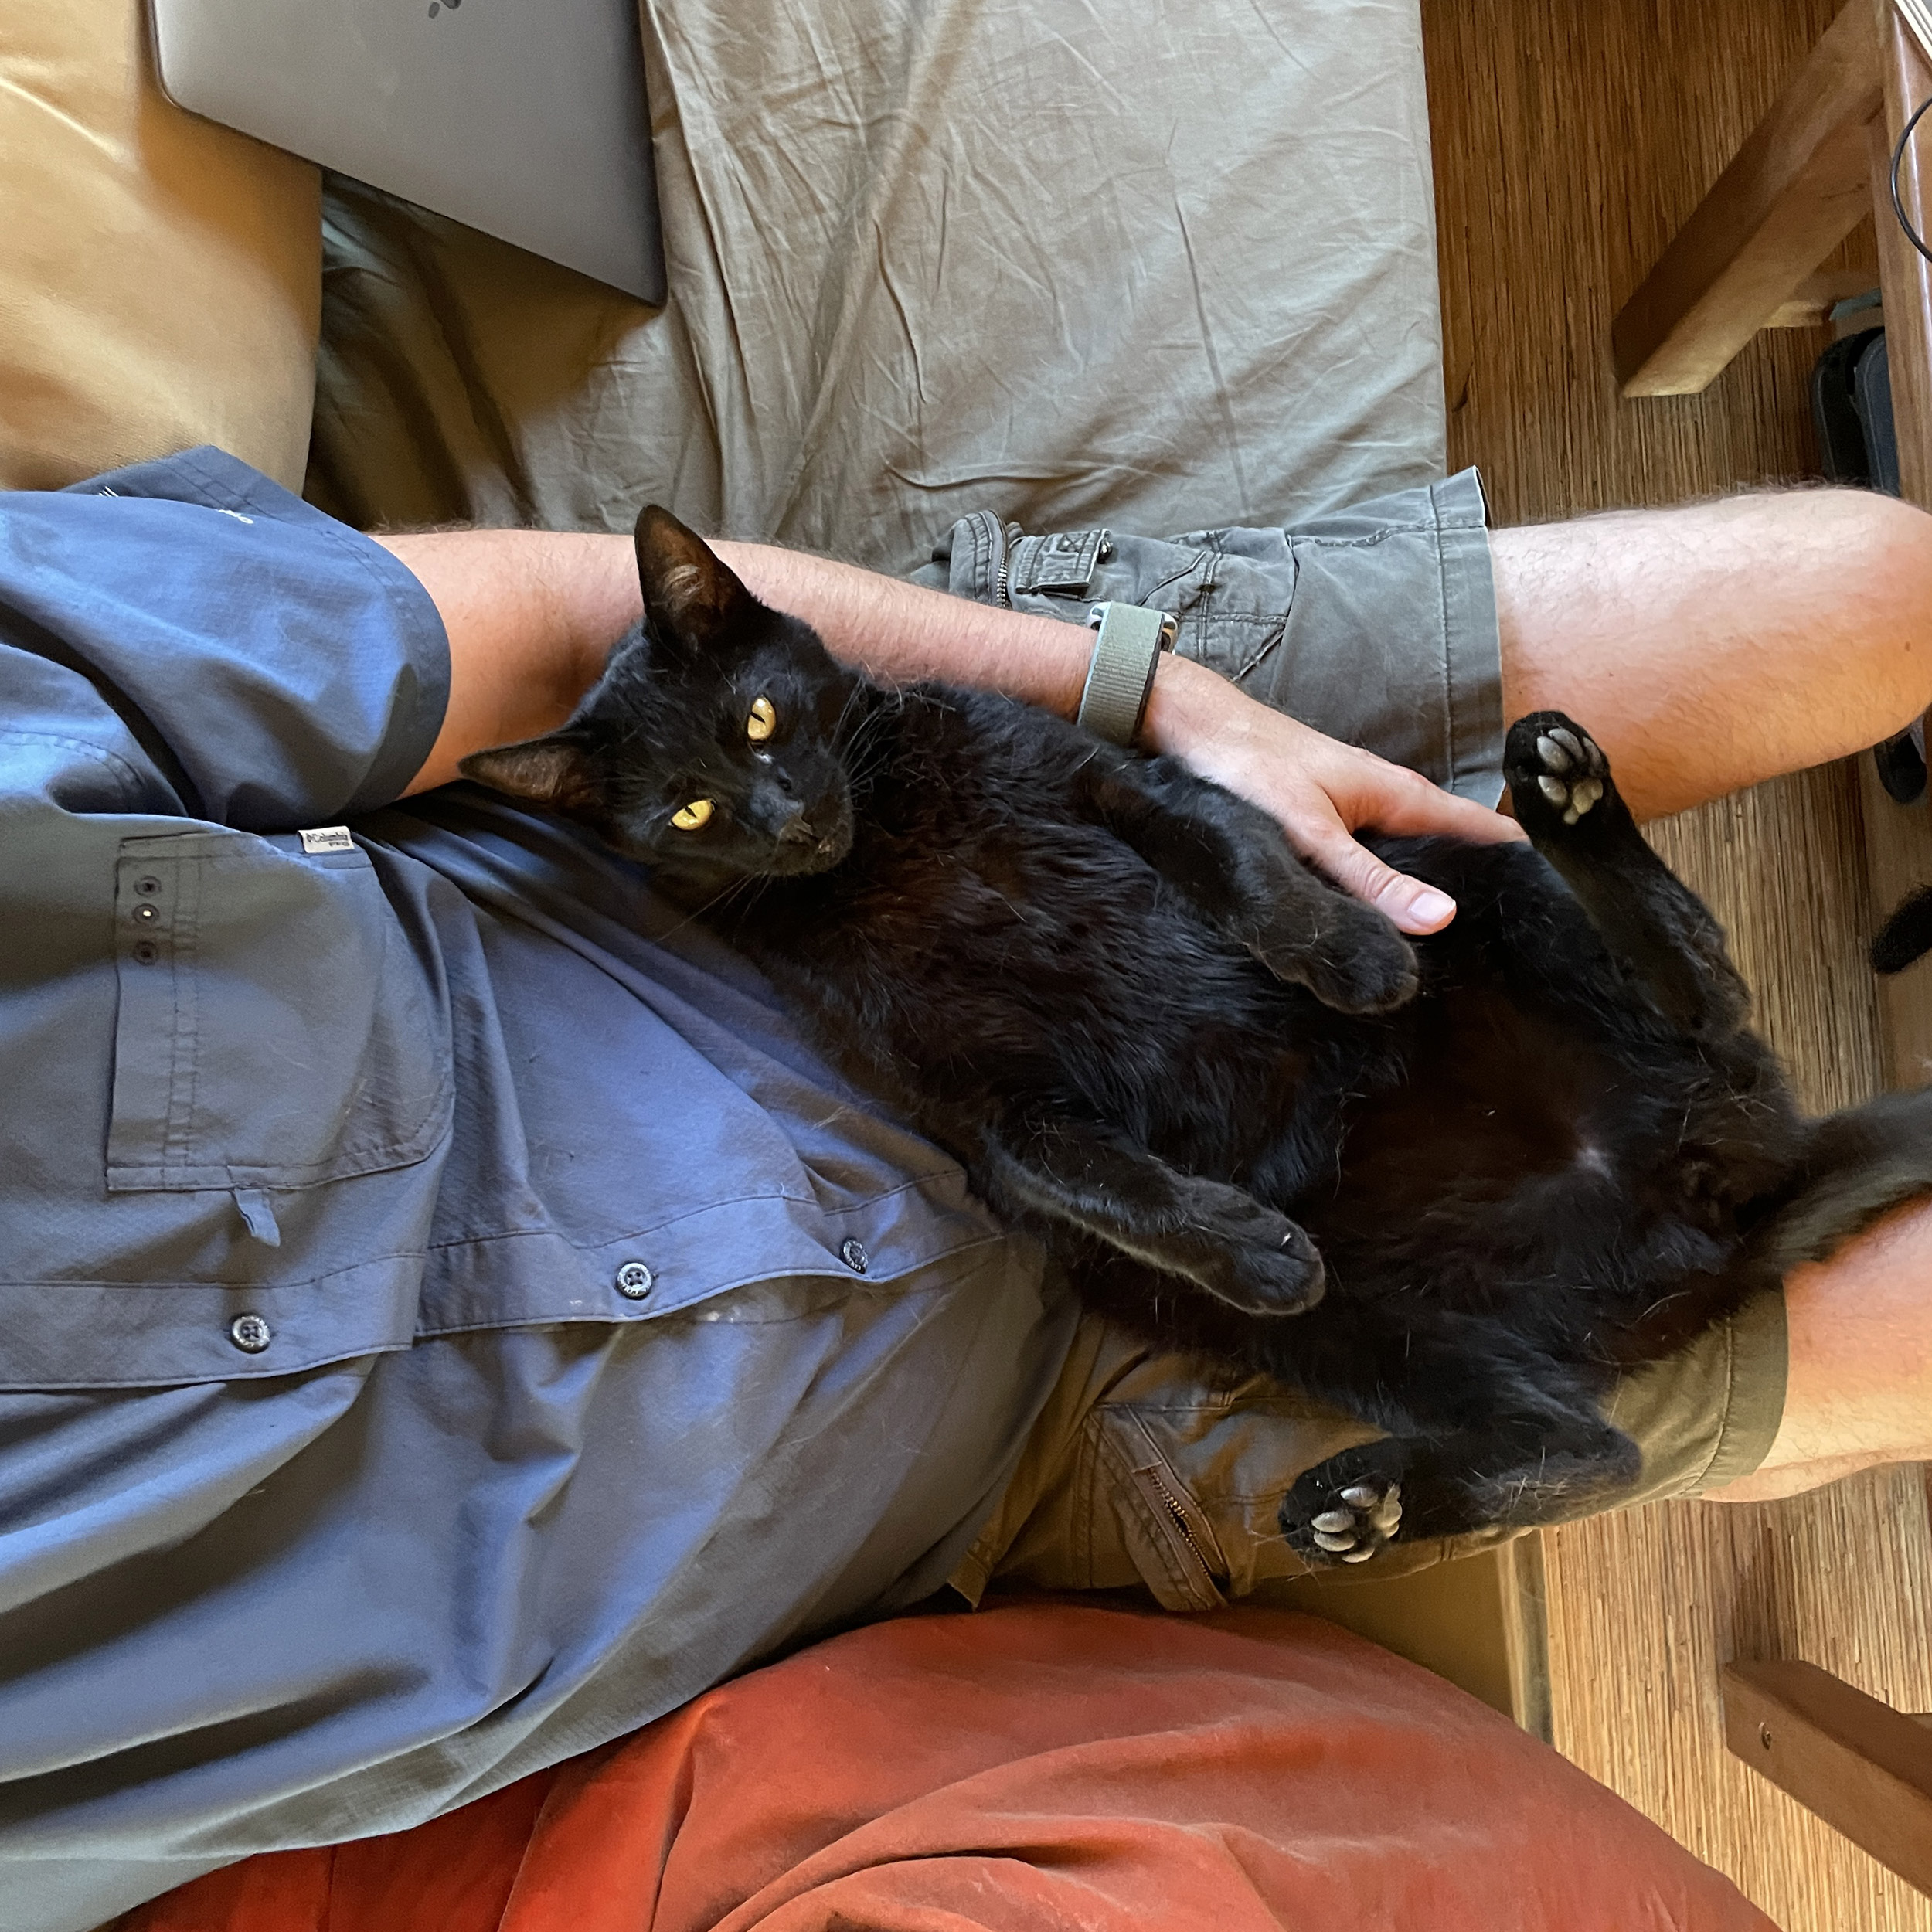 A black cat occupies the lap of a man and looks toward the camera overhead